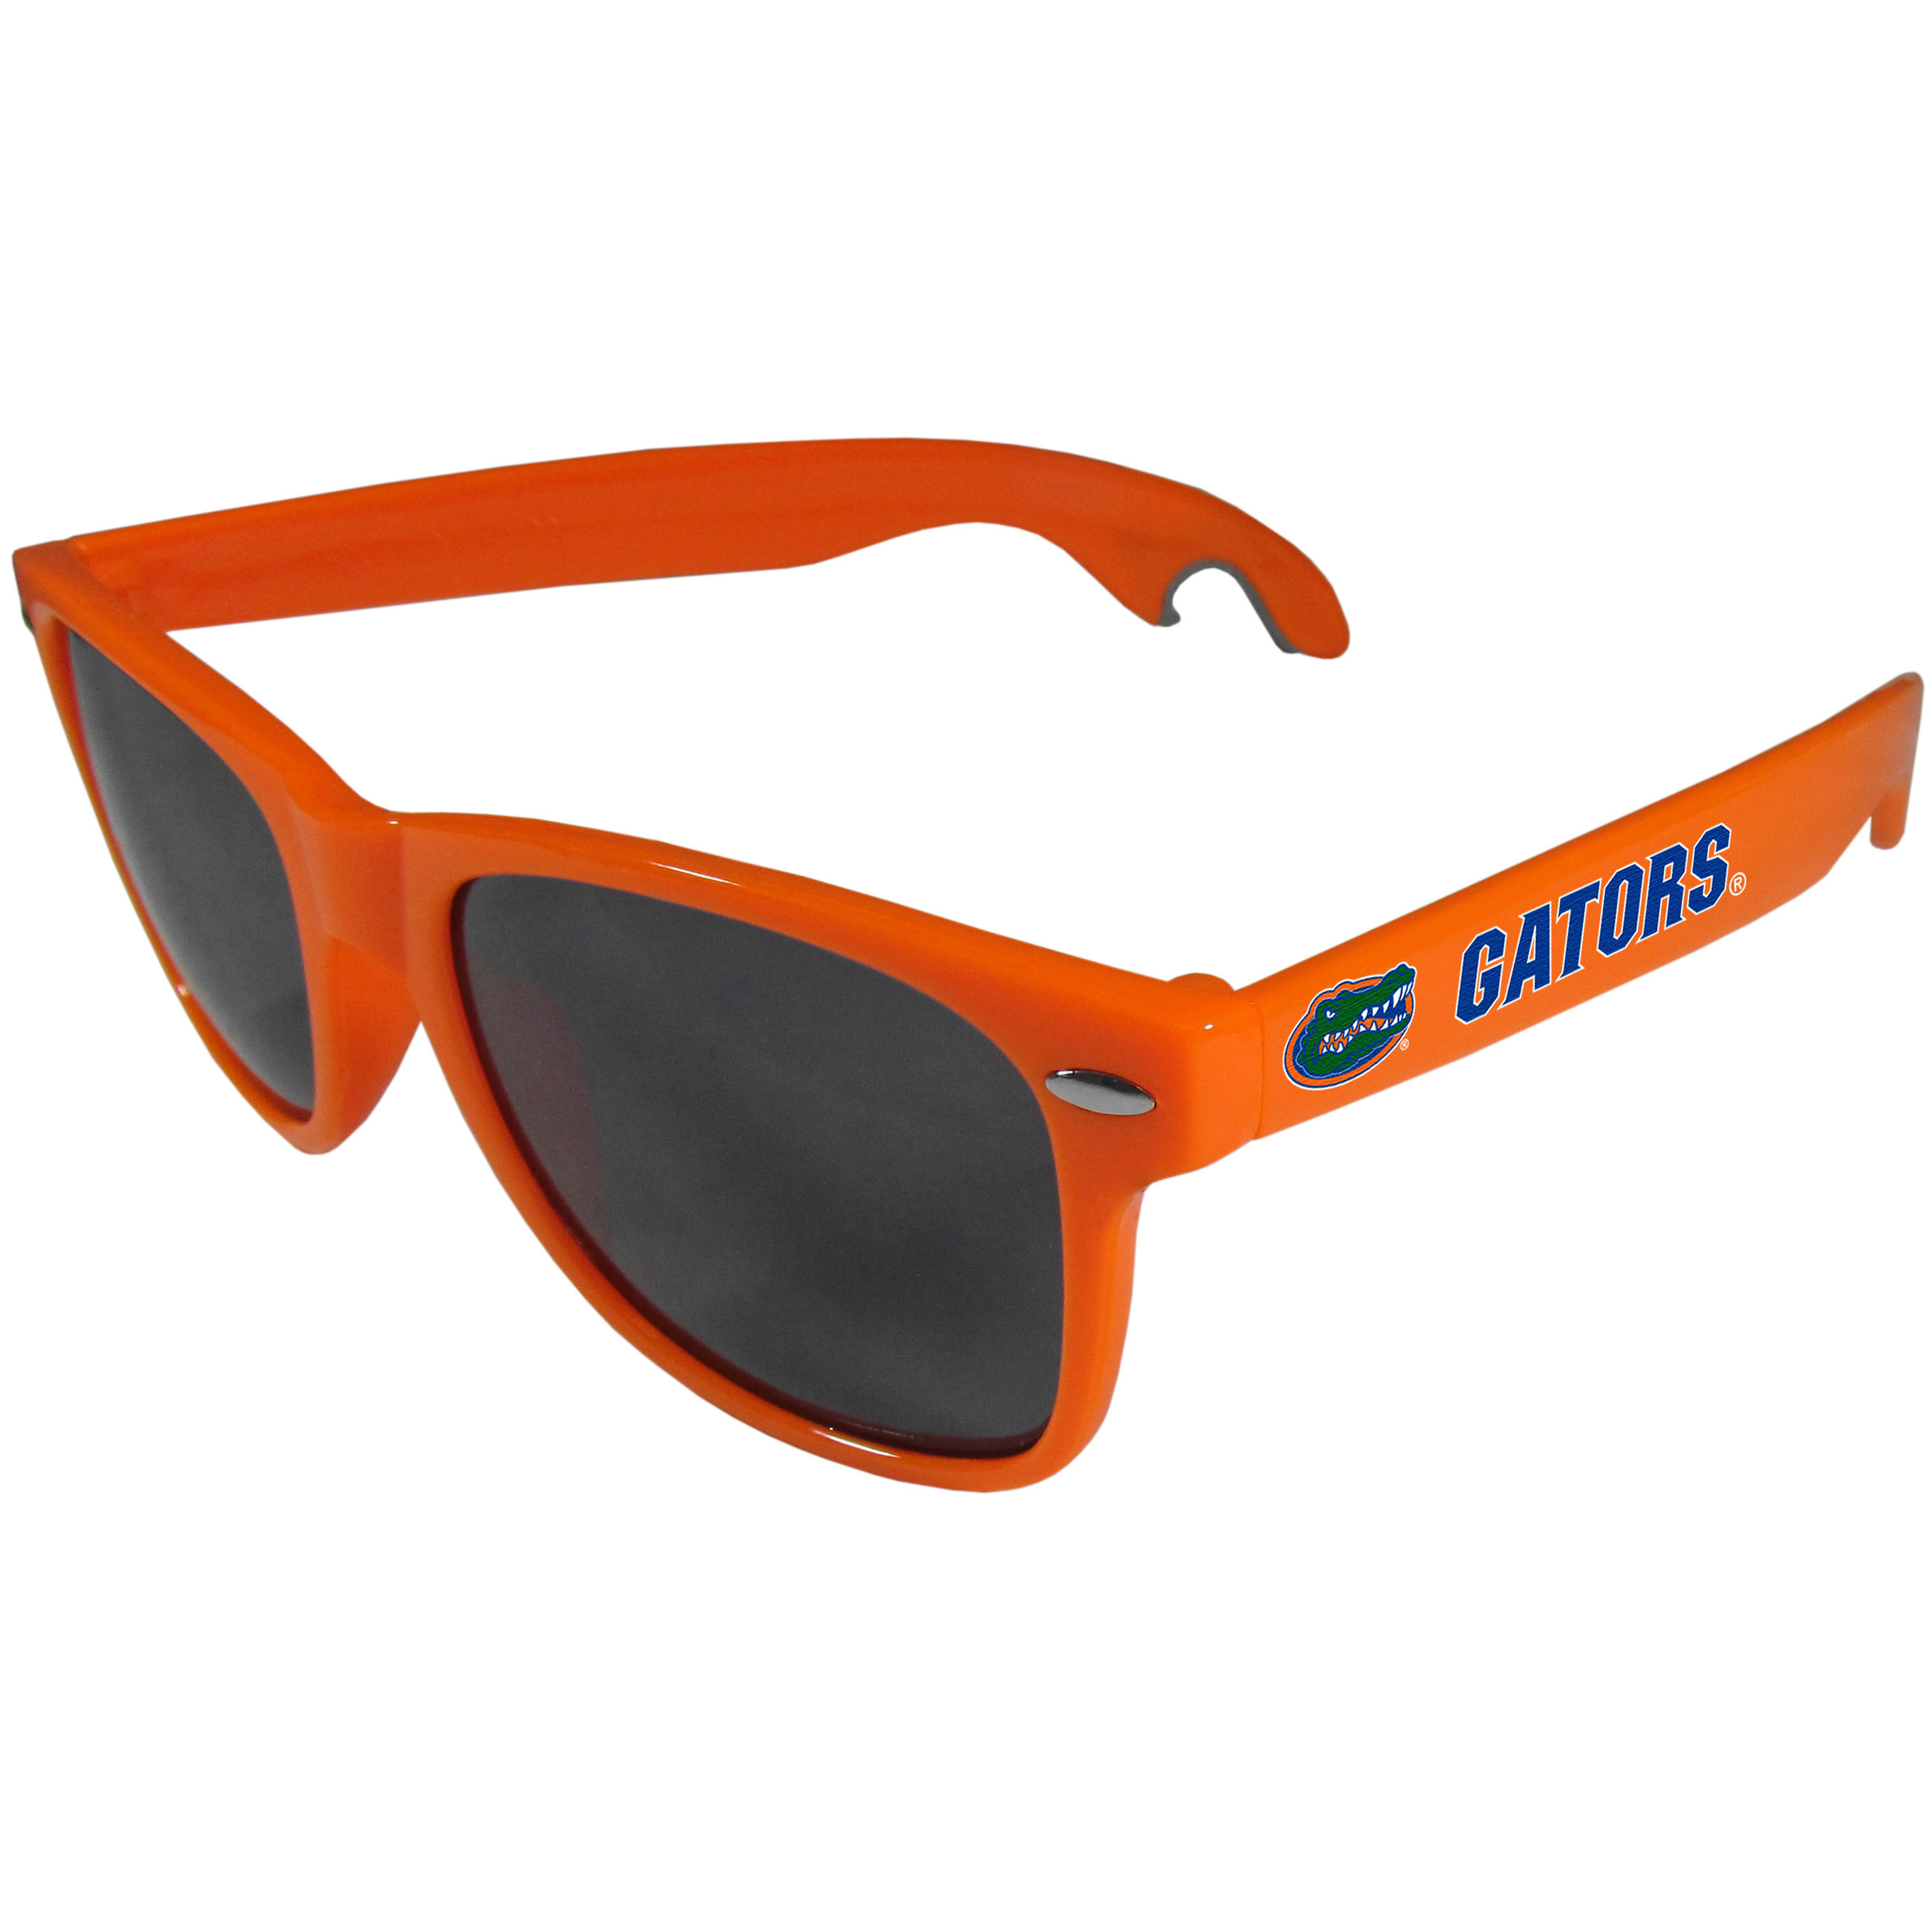 Florida Gators Beachfarer Bottle Opener Sunglasses, Orange - Seriously, these sunglasses open bottles! Keep the party going with these amazing Florida Gators bottle opener sunglasses. The stylish retro frames feature team designs on the arms and functional bottle openers on the end of the arms. Whether you are at the beach or having a backyard BBQ on game day, these shades will keep your eyes protected with 100% UVA/UVB protection and keep you hydrated with the handy bottle opener arms.